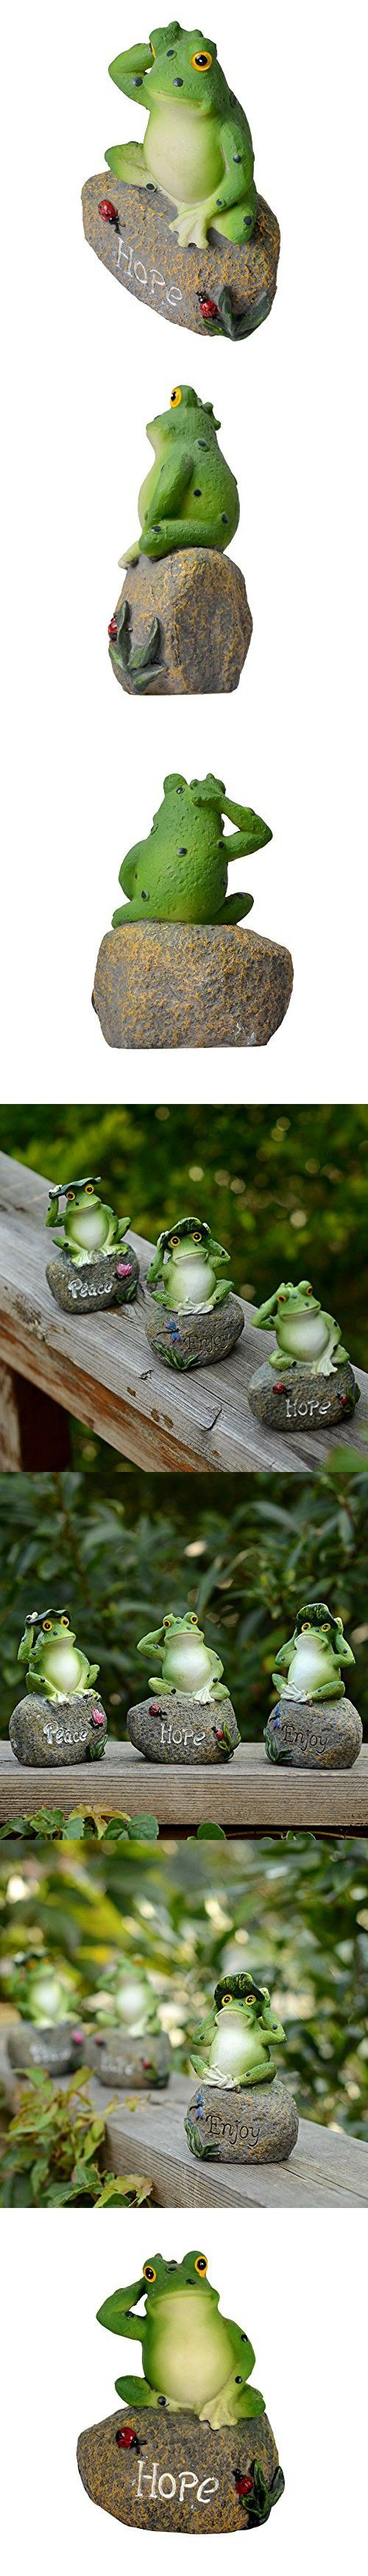 [Return to Natural] Cute Frog Garden Figurine Sculpture Decoration Statue Home Decor Accents Collection Hand Painted Design Ornaments, Hope